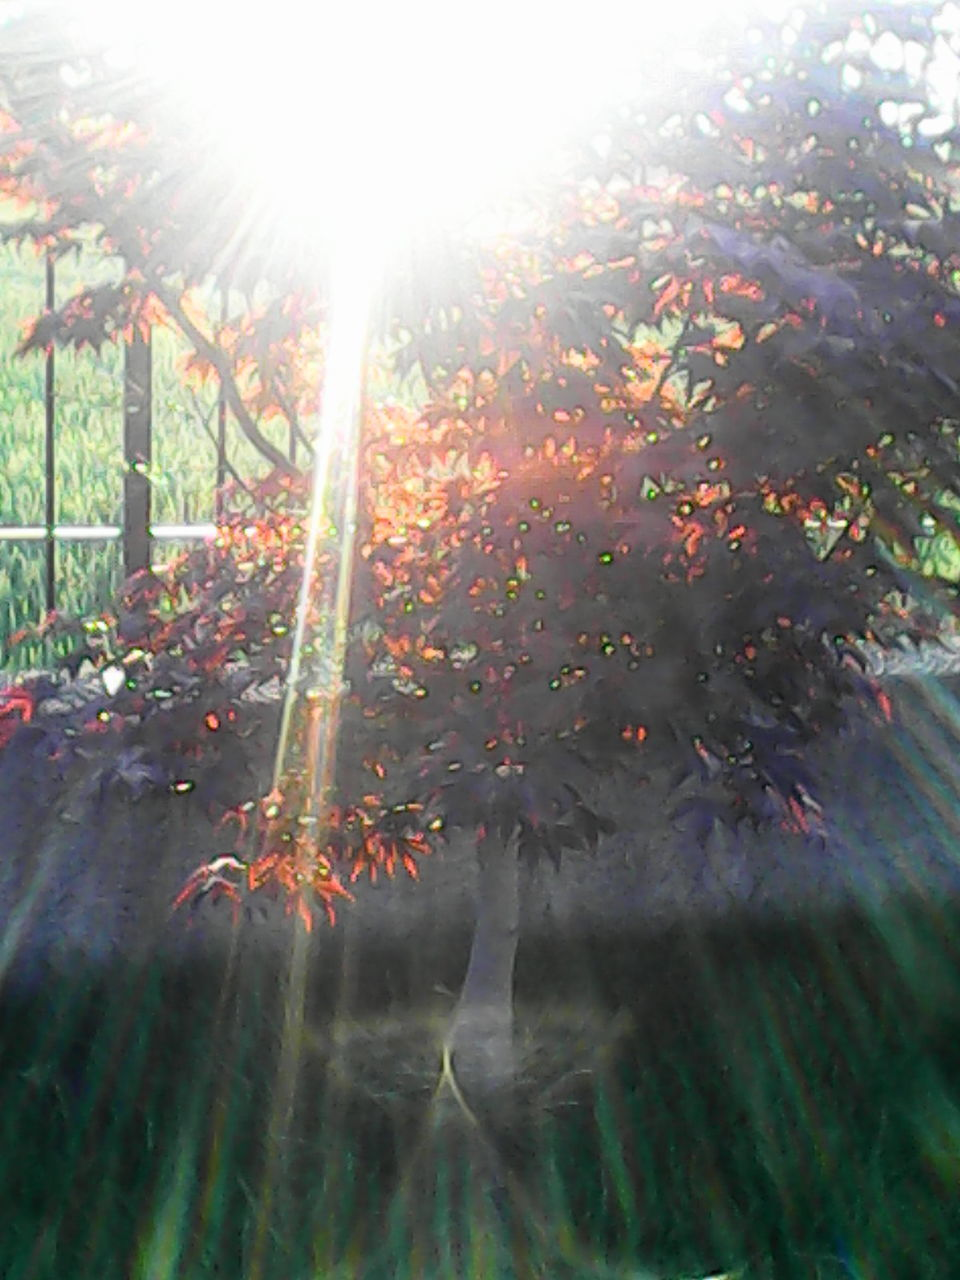 tree, sunlight, nature, no people, growth, autumn, day, outdoors, leaf, beauty in nature, plant, grass, close-up, sky